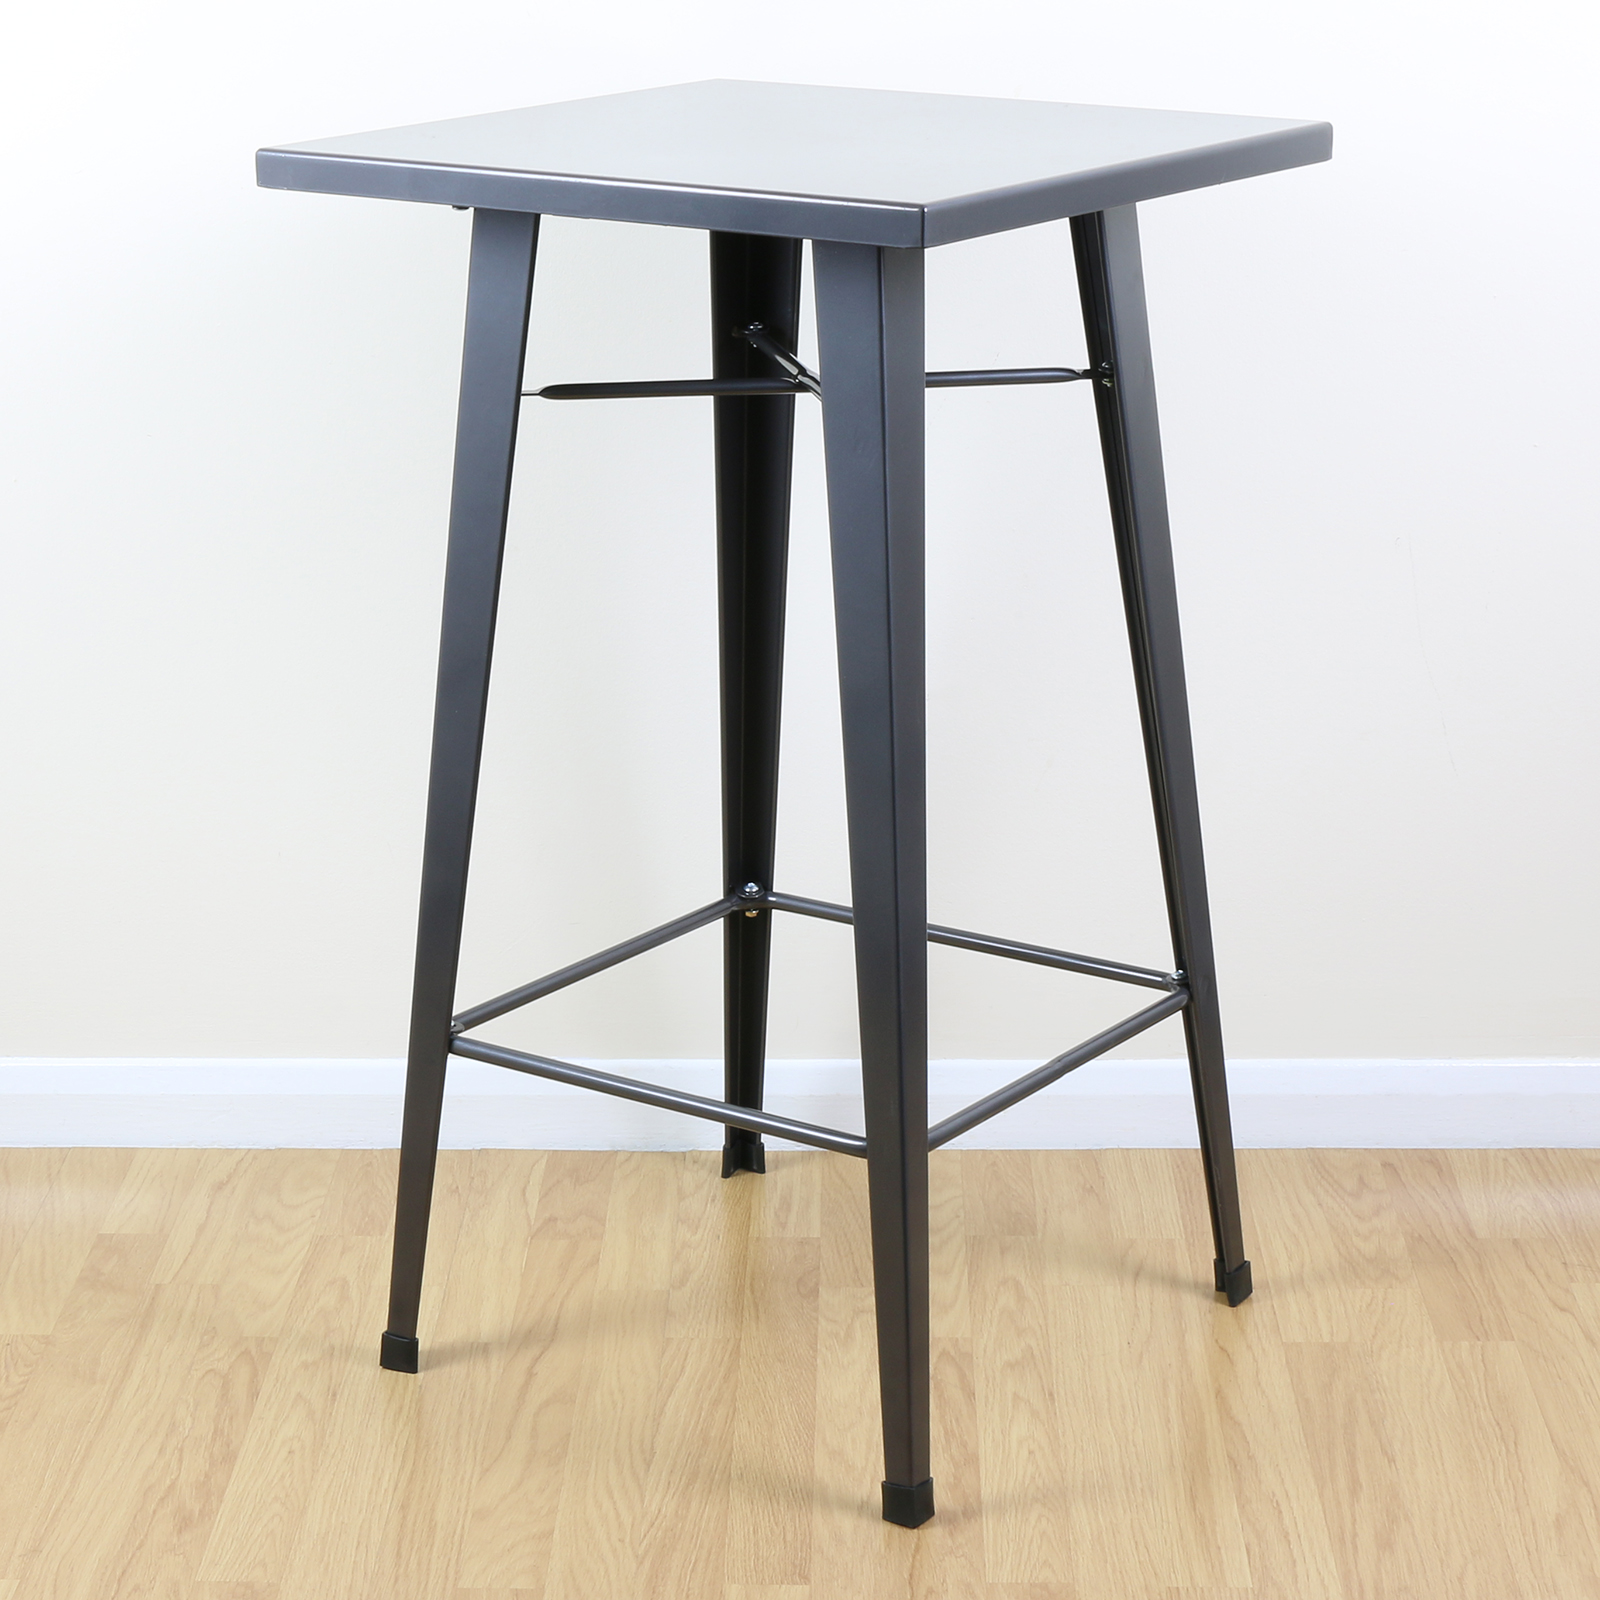 Sentinel Gunmetal Grey Tall Metal Square Bistro Cafe Bar Table Vintage Style